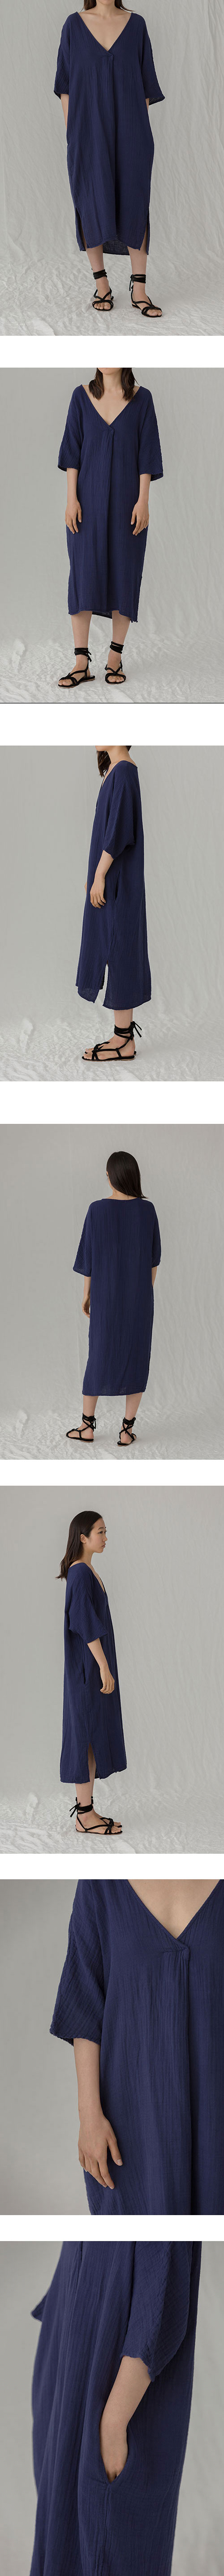 COTTON GAUZE SAN DRESS, ASTRAL NAVY